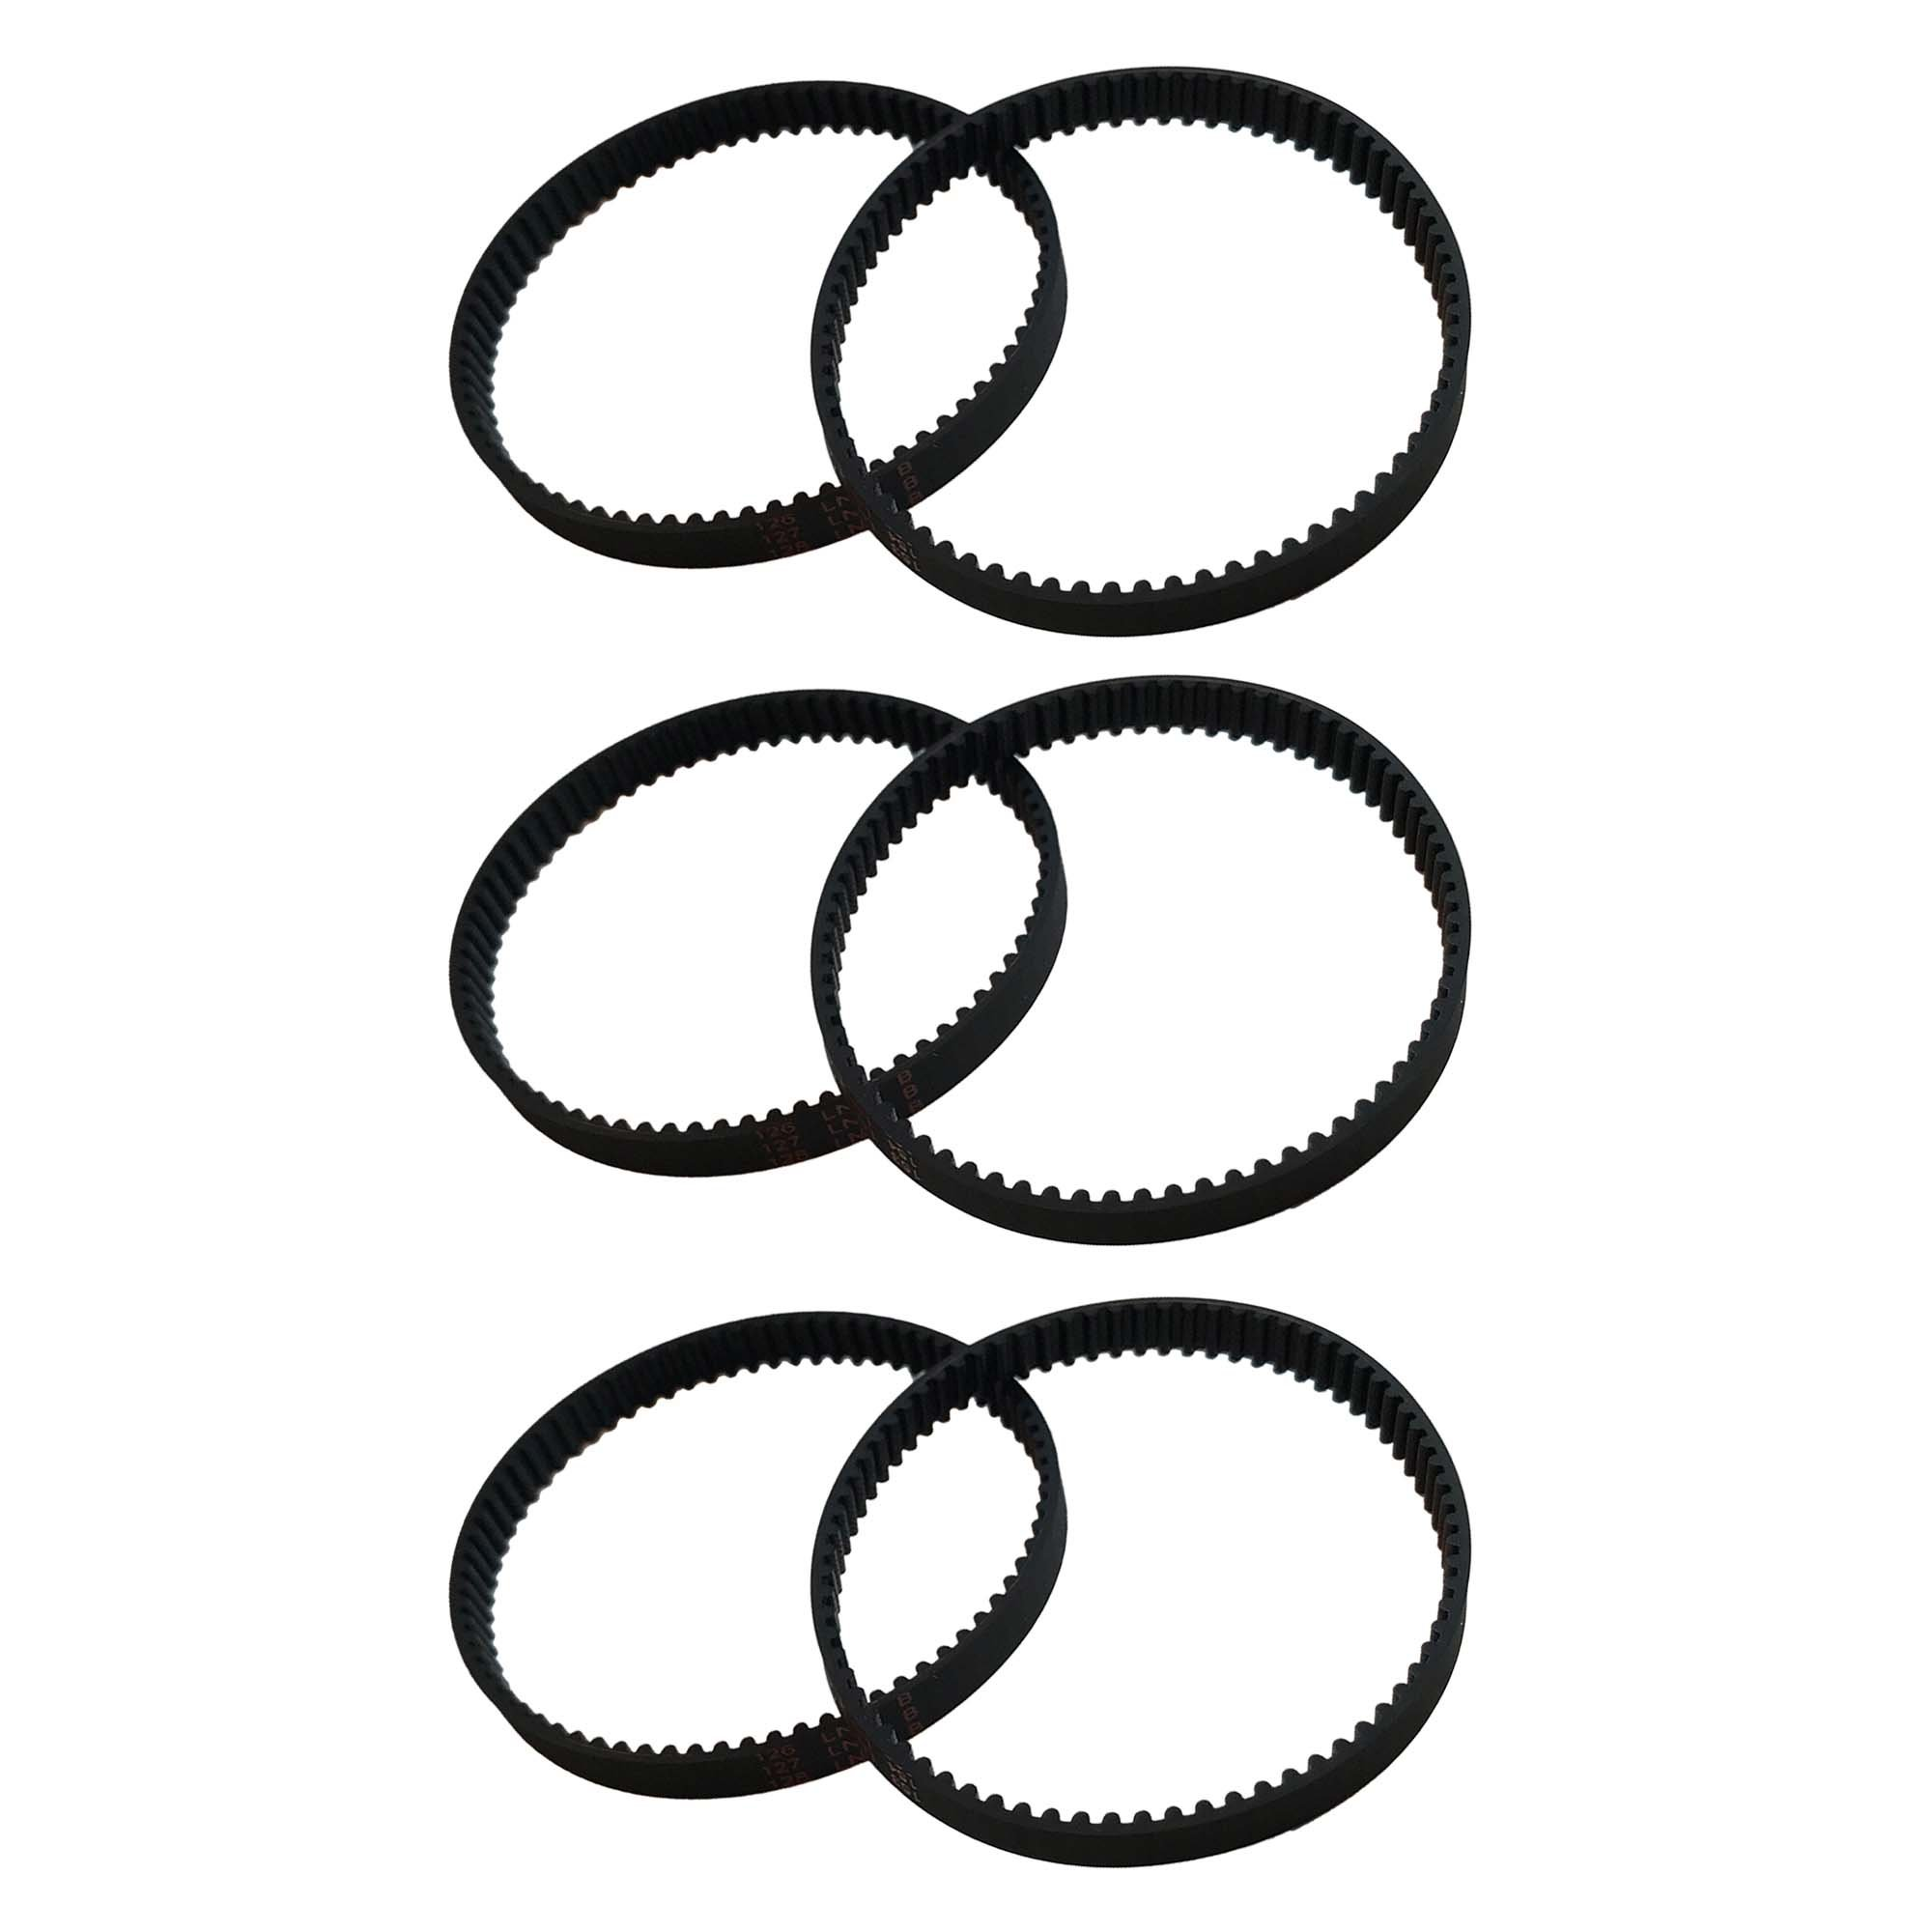 Think Crucial 6 Replacement for Dyson DC17 8-MM Belts, Compatible With Part # 911710-01